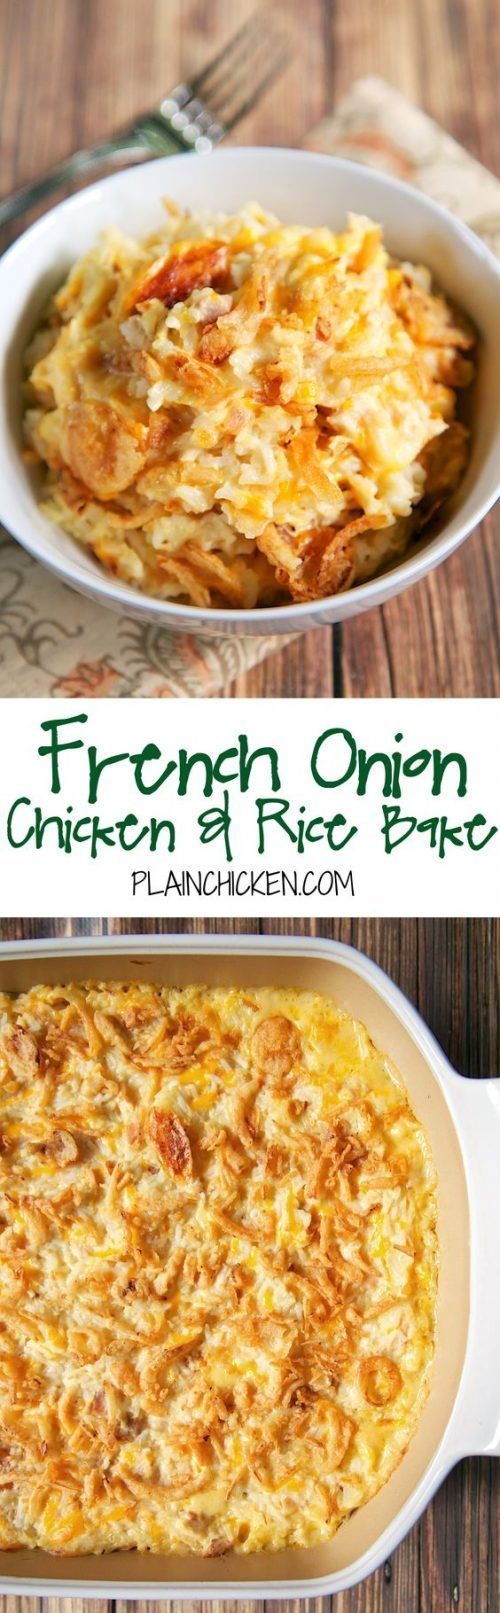 French Onion Chicken and Rice Bake. This looks heavenly and would so tasty for lunch, dinner, or any special occasion. Best Chicken Dinner recipe!